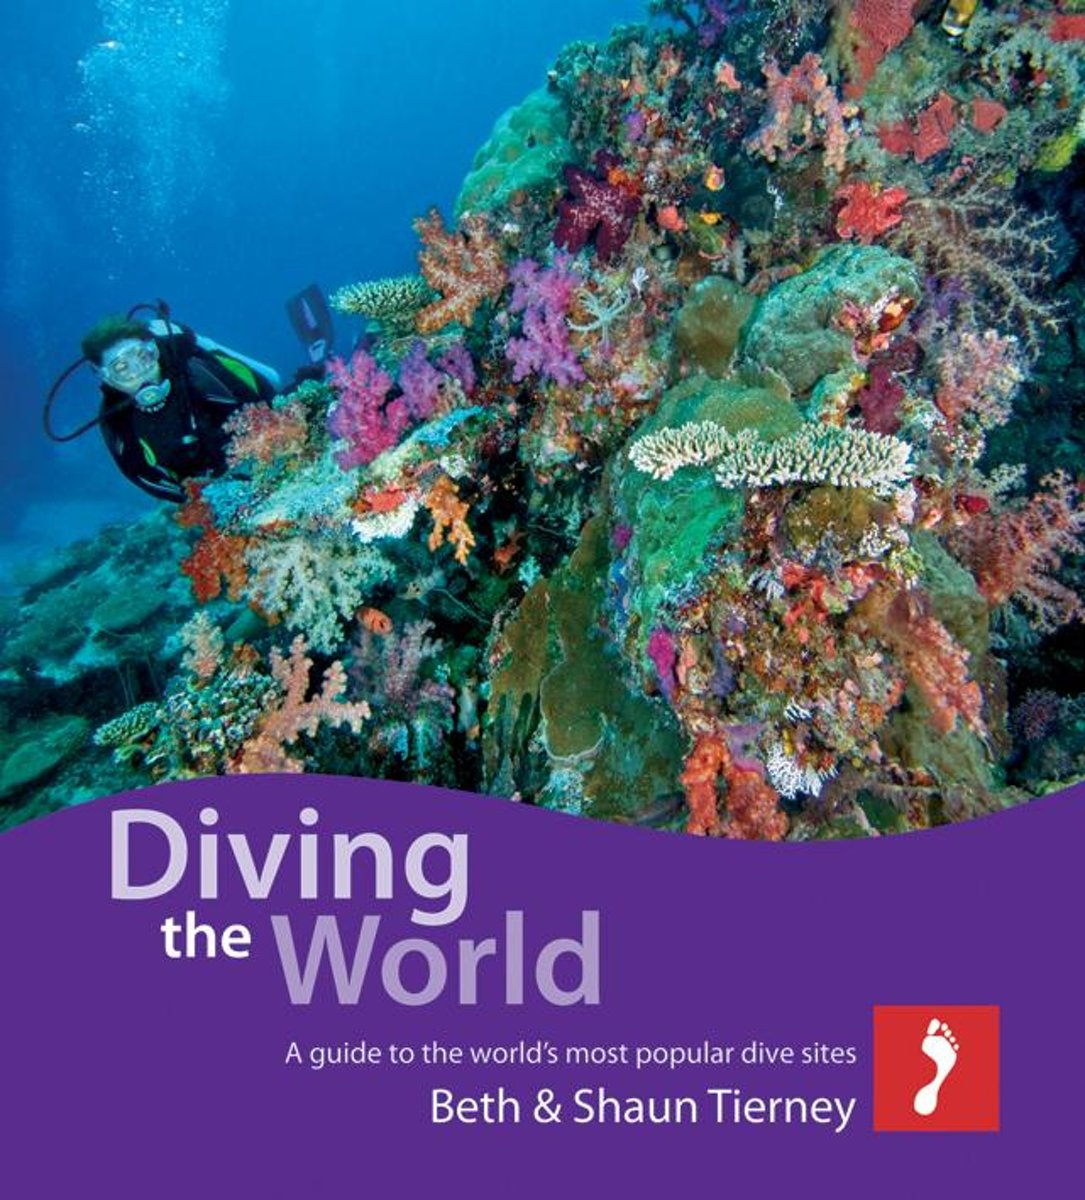 Diving the World for iPad: A guide to the world's most popular dive sites